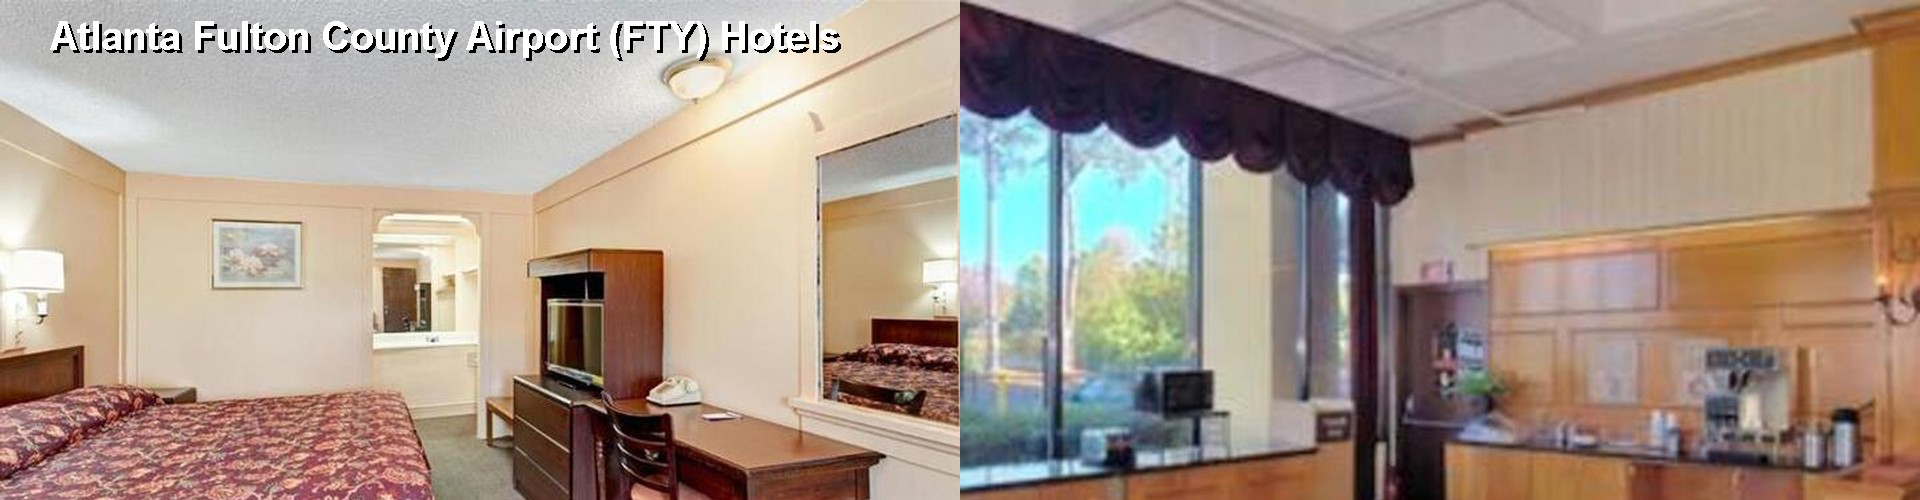 4 Best Hotels near Atlanta Fulton County Airport (FTY)